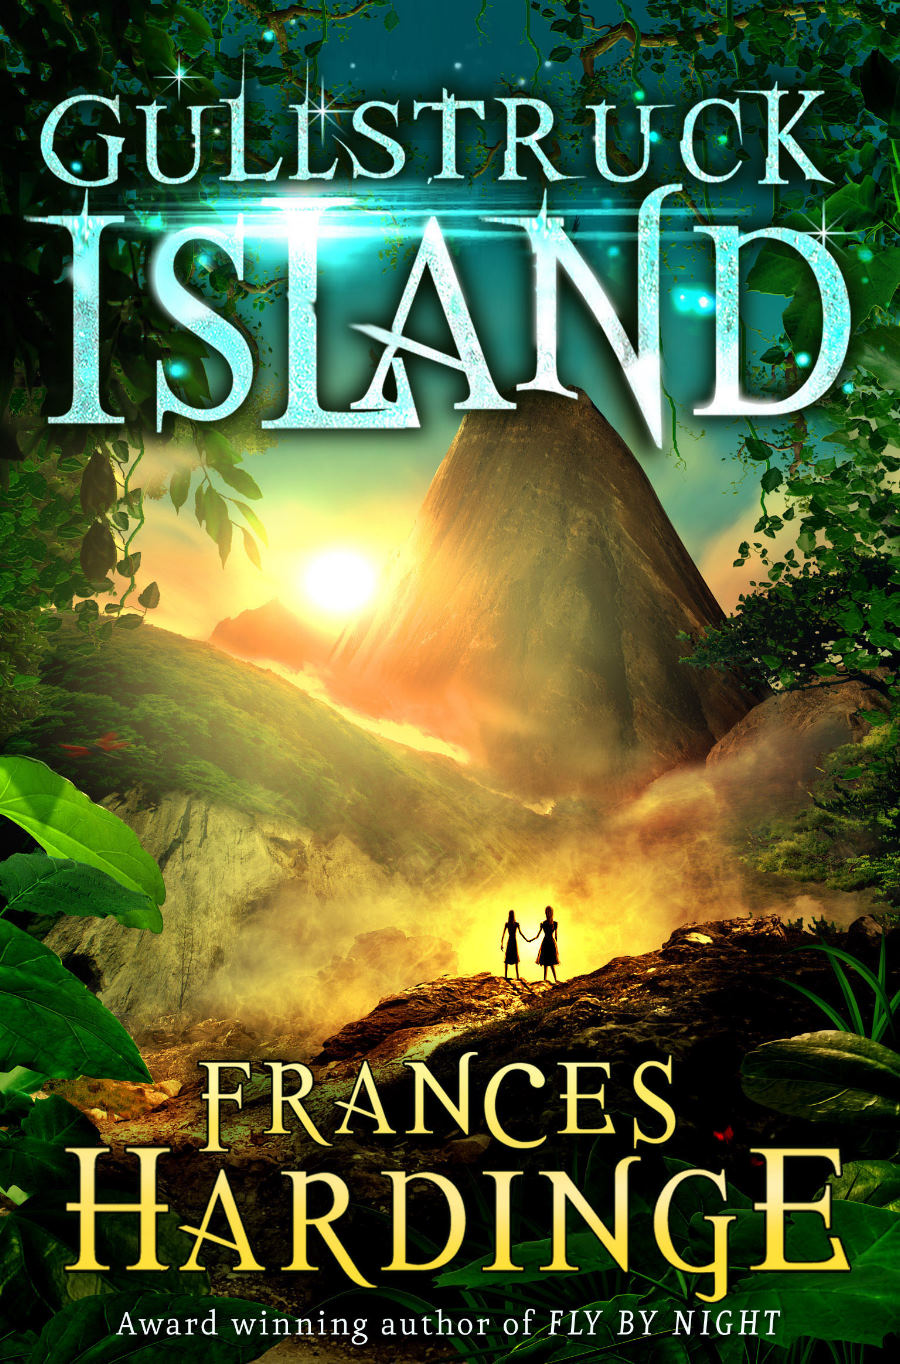 gullstruck island frances hardinge, http://www.iqtoys.co.nz/product/39025/gullstruck-island-book/